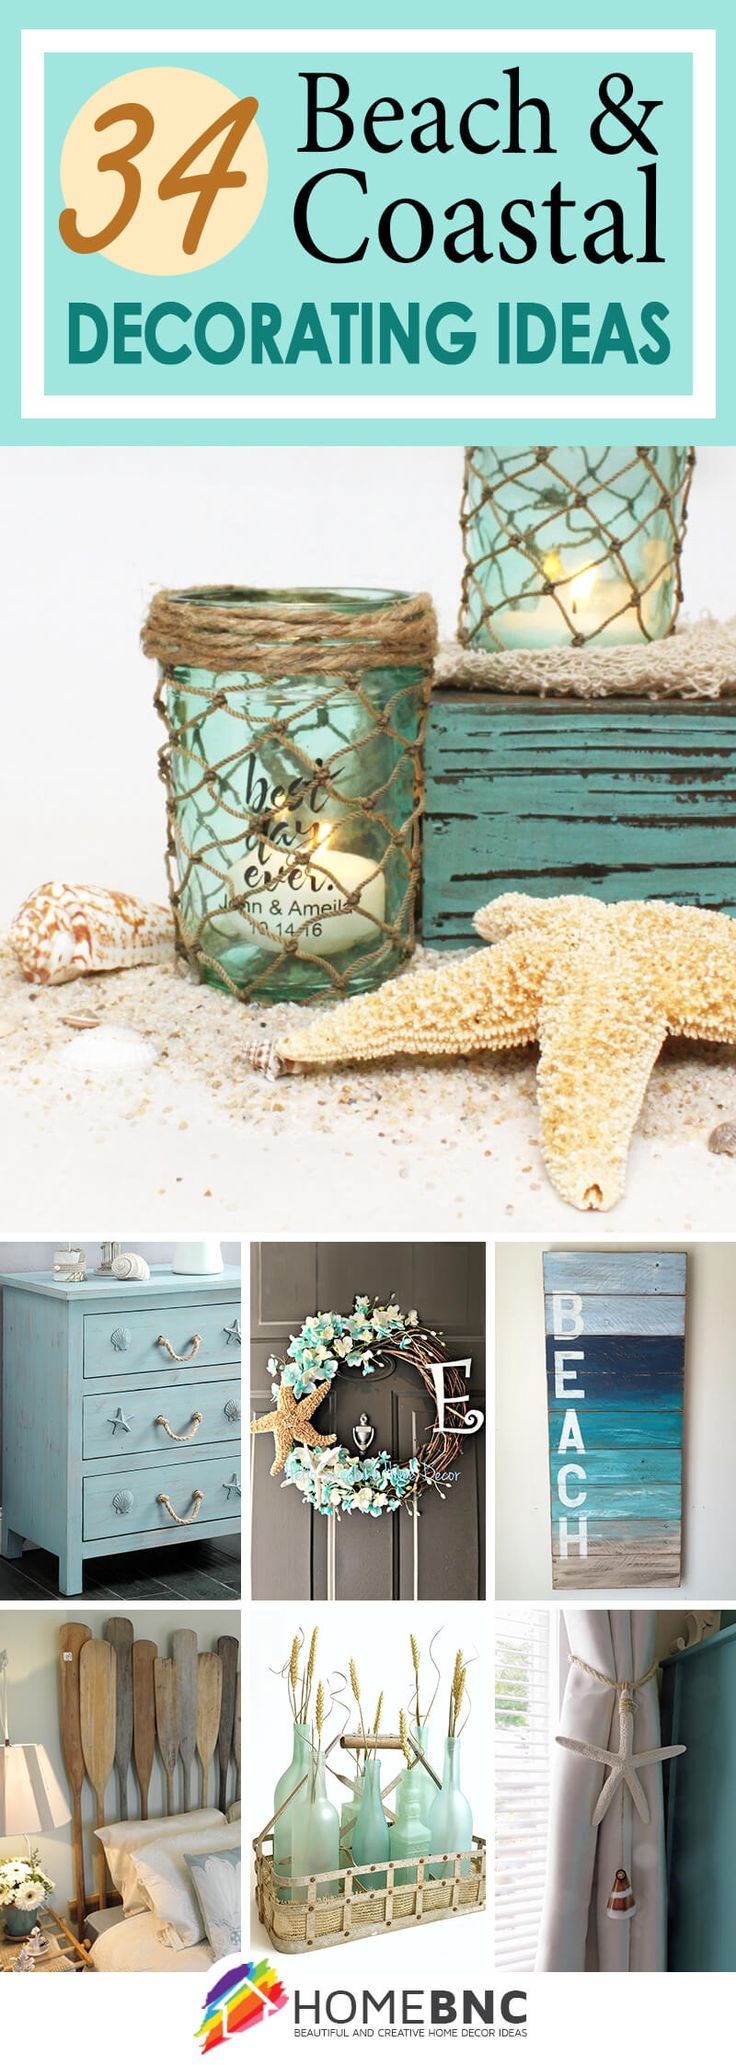 Beach Decor Ideas Best 25 Coastal Decor Ideas On Pinterest  Beach House Decor